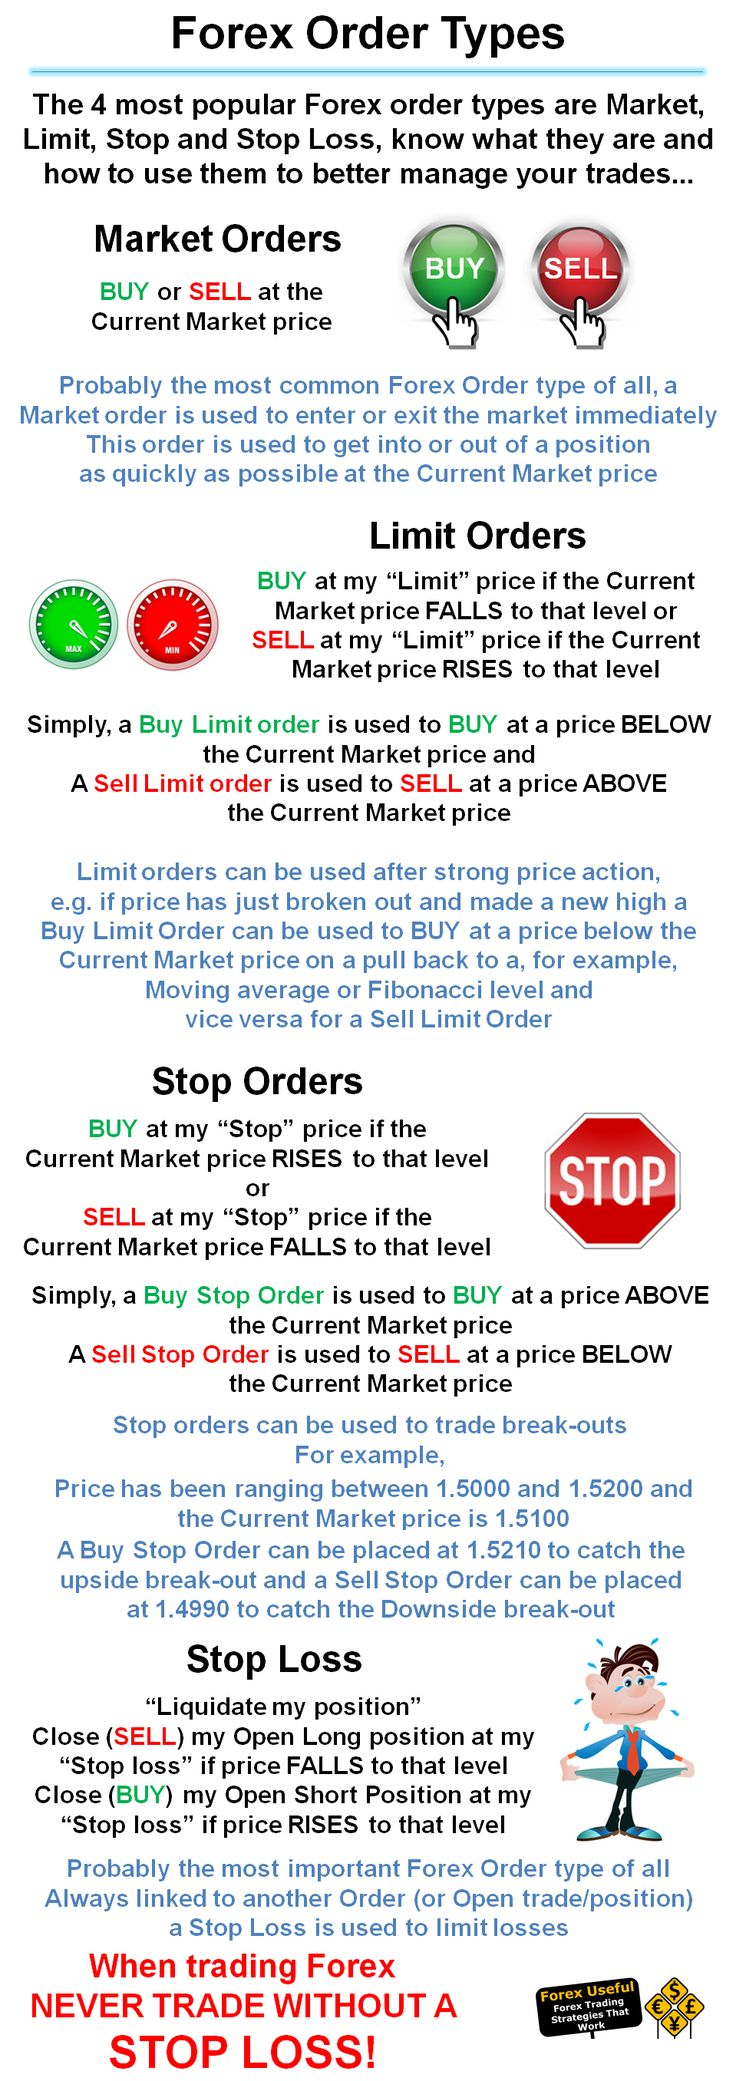 Forex trading order types